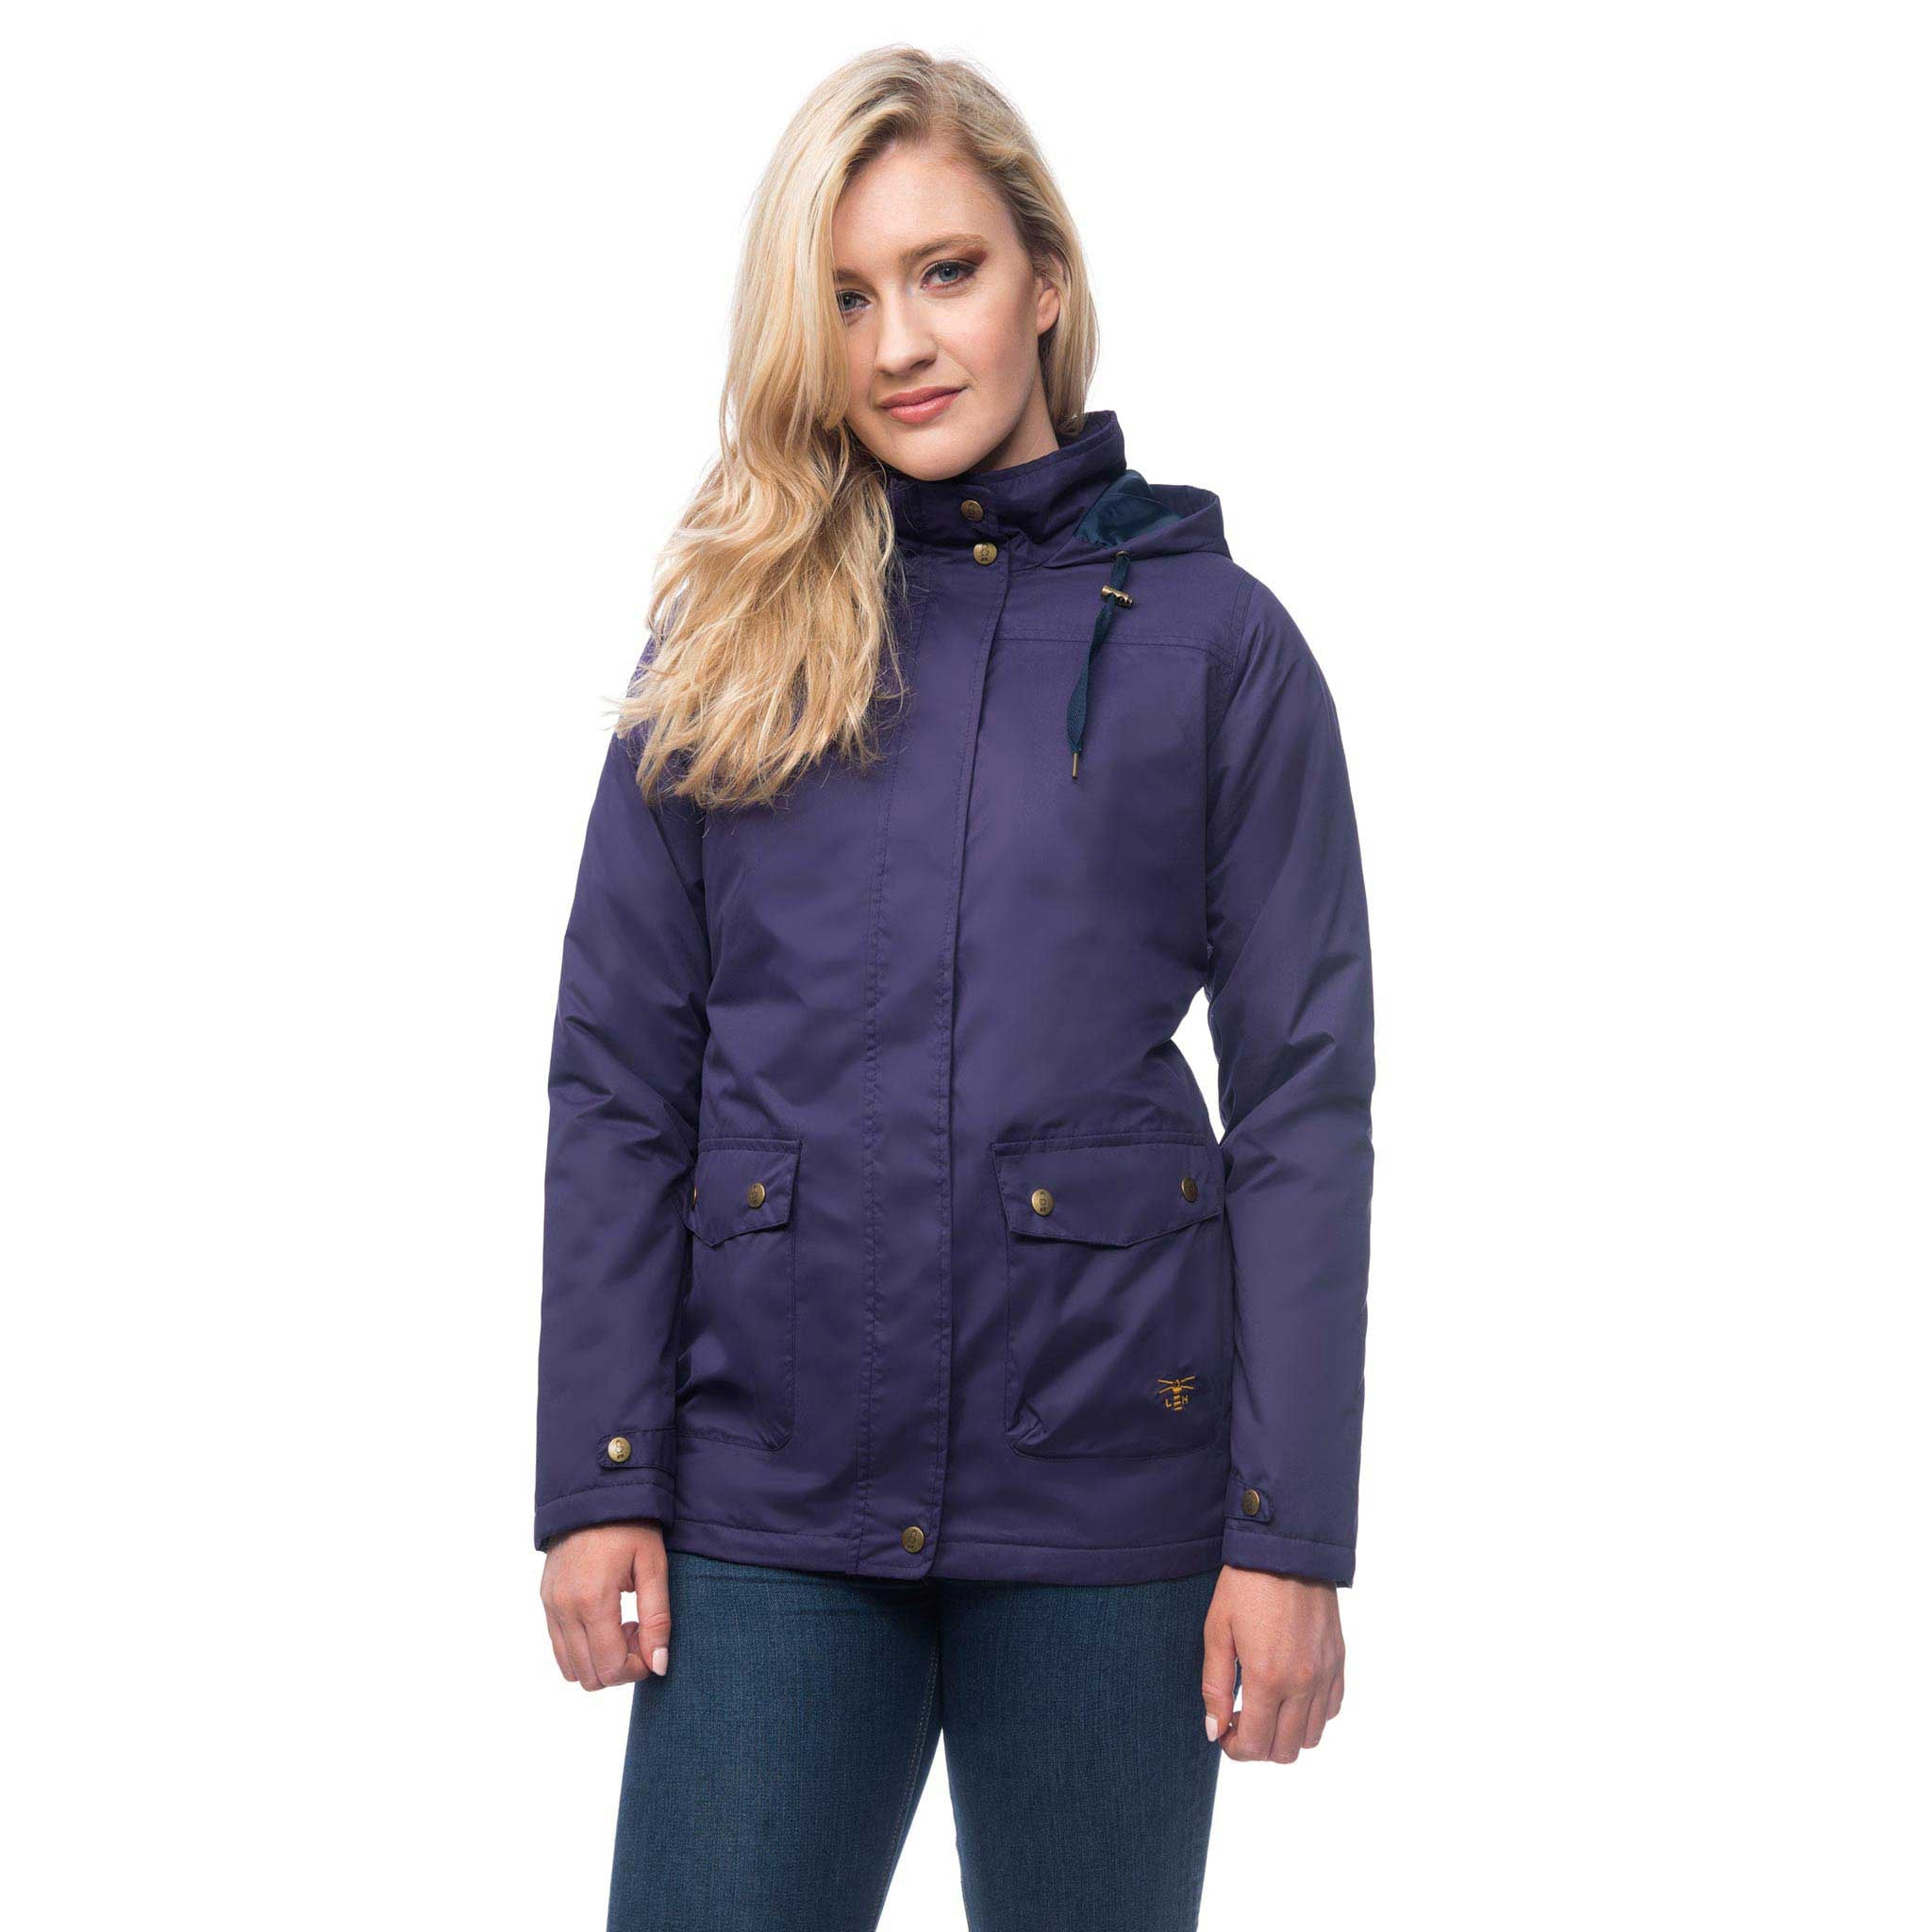 Lighthouse Alyssa Womens Waterproof Hooded Jacket in Purple. Zipped and Buttoned. Hood down.